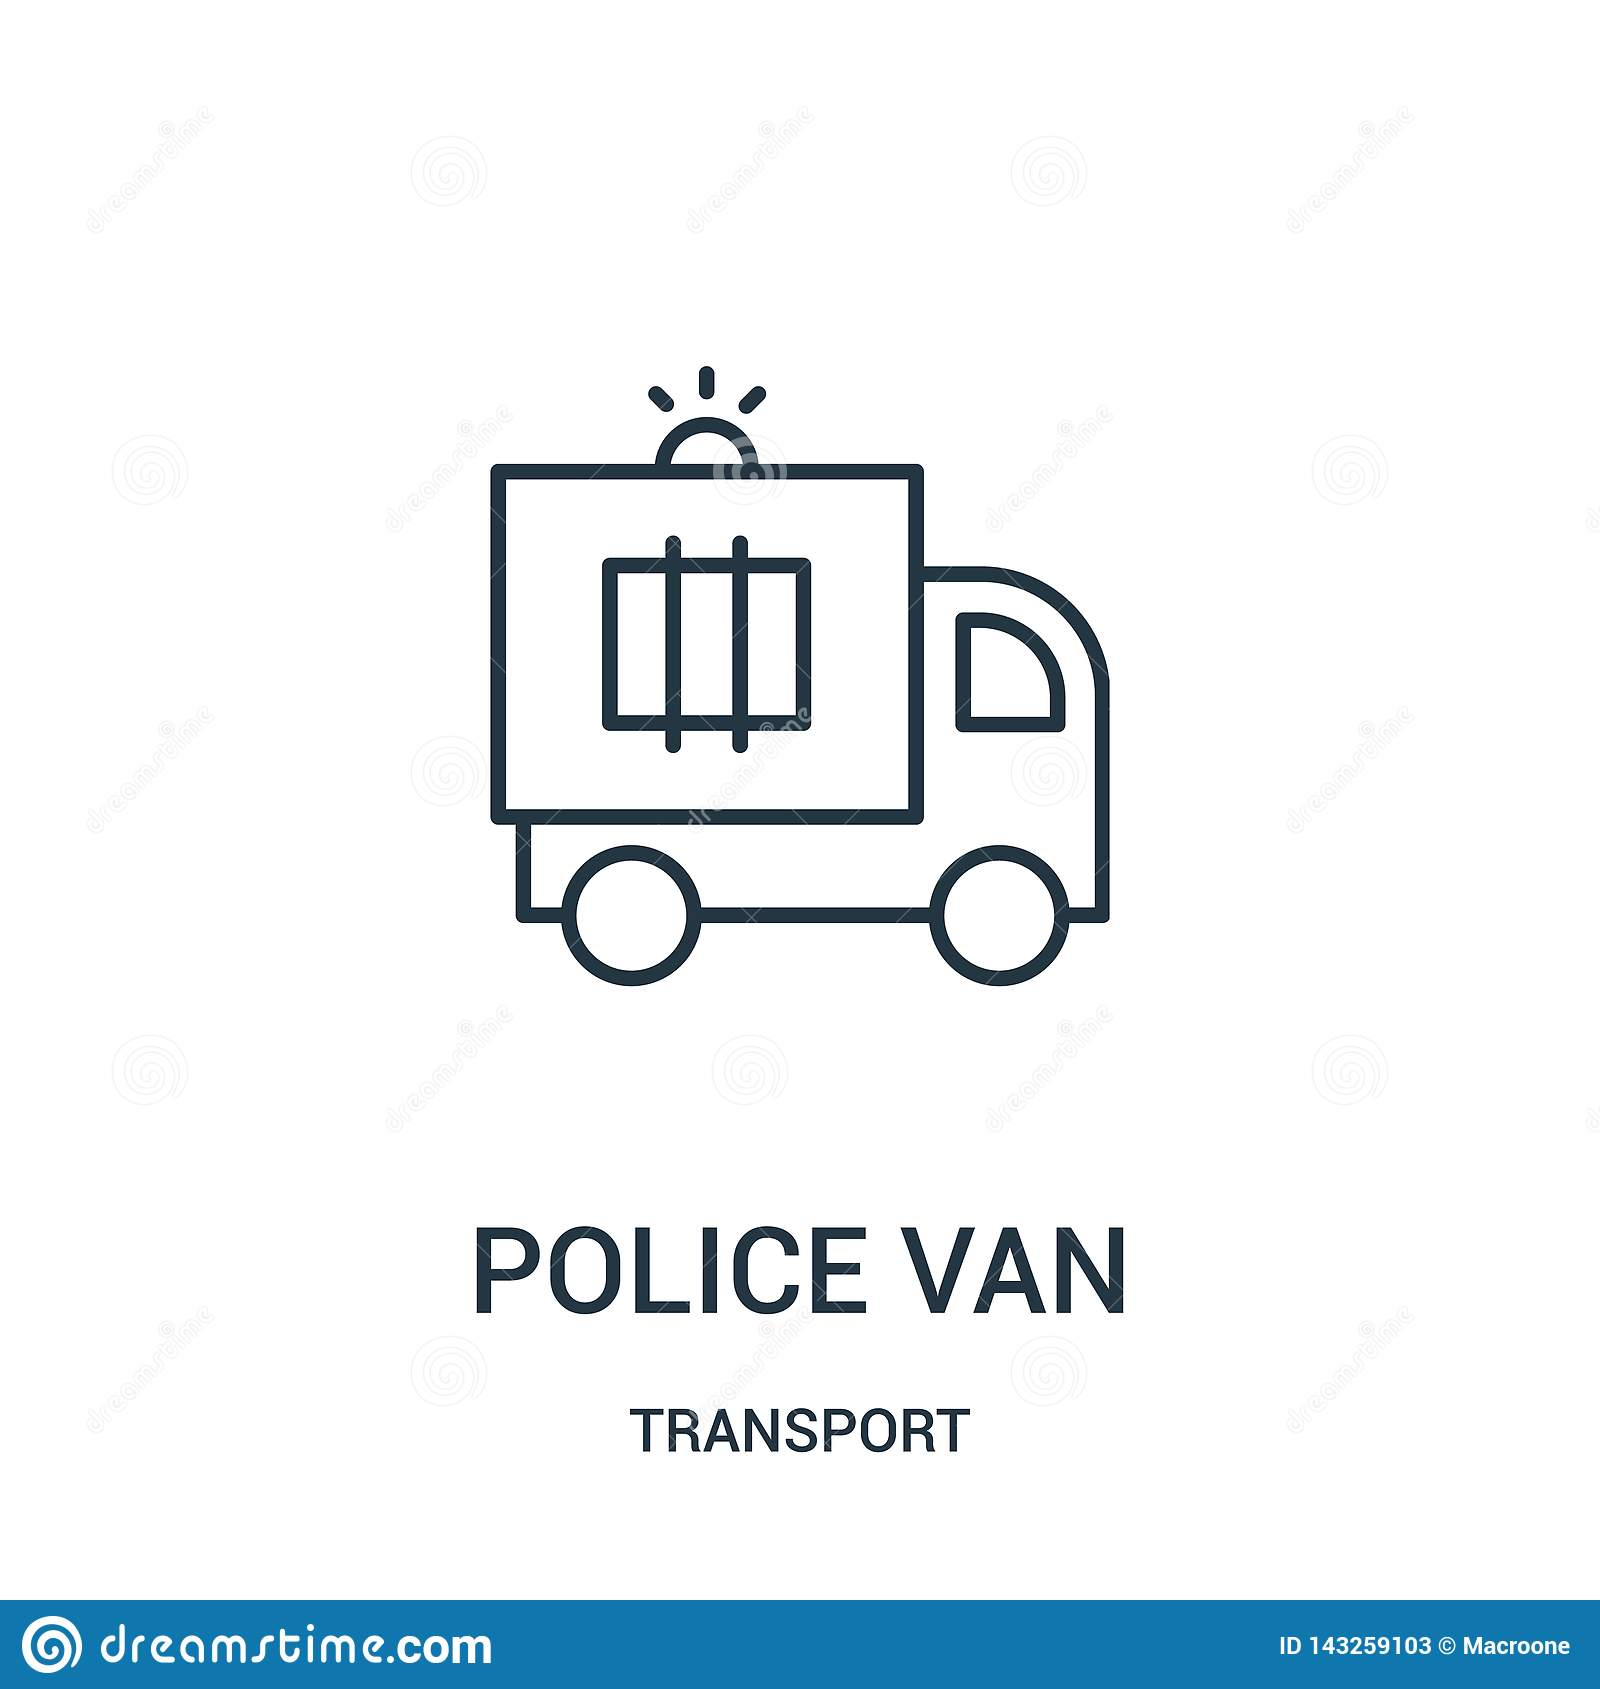 police van icon vector from transport collection. Thin line police van outline icon vector illustration